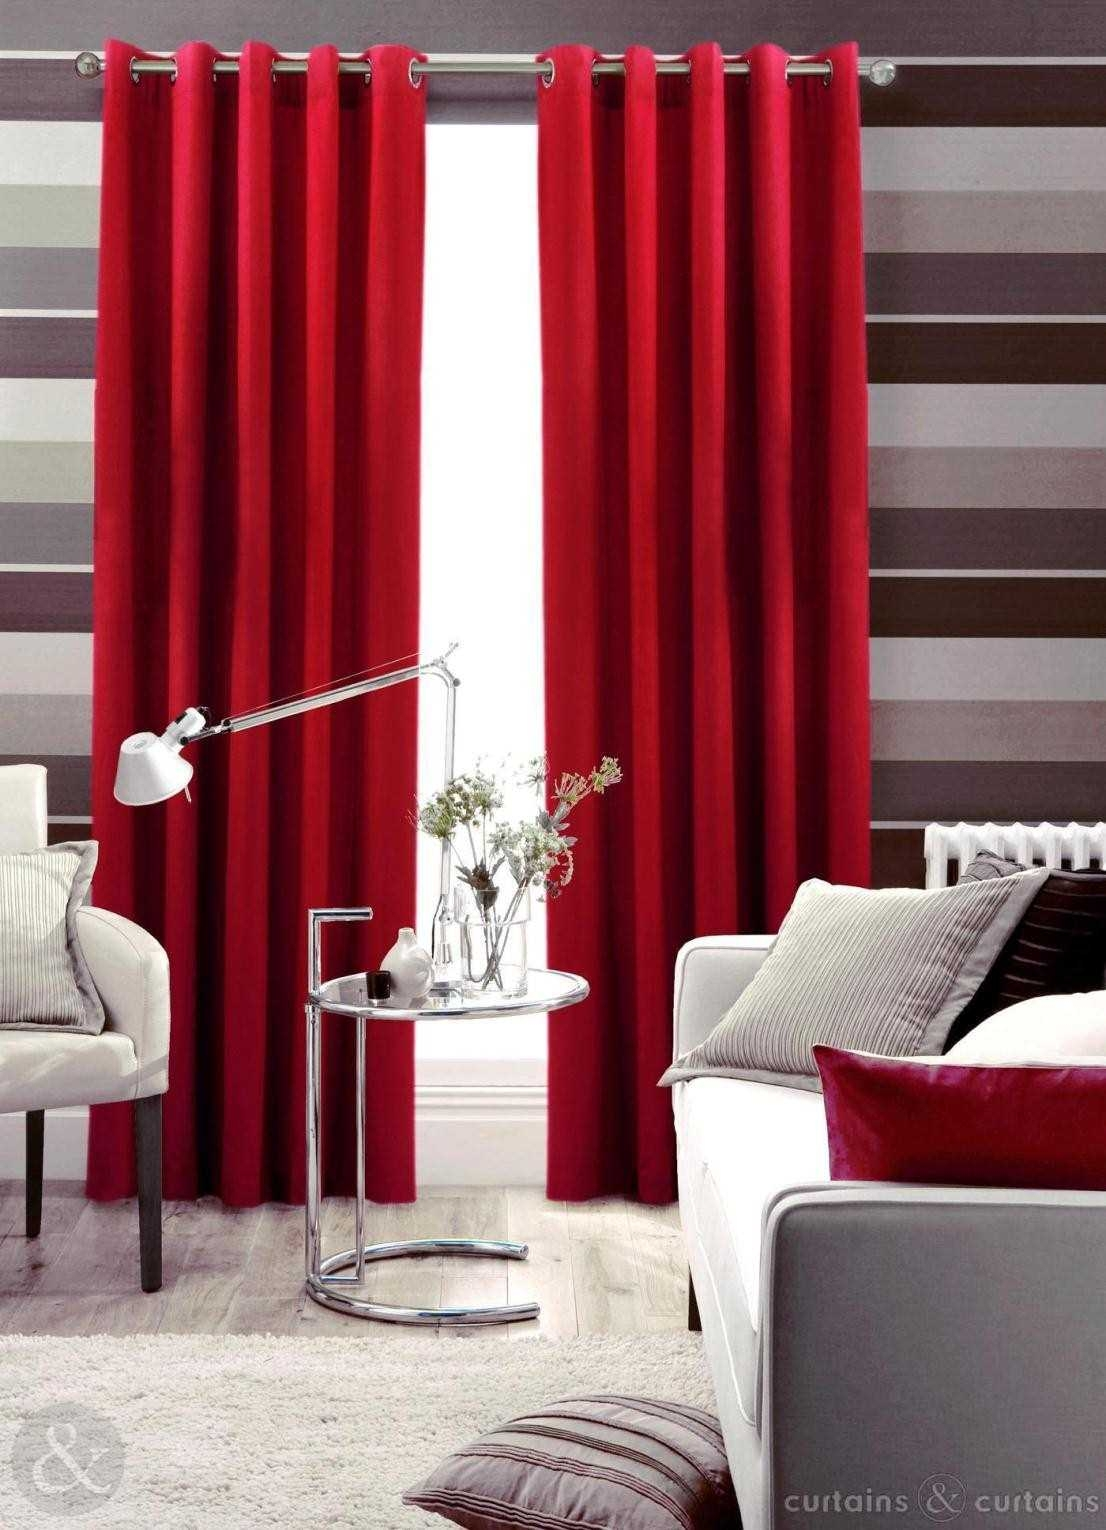 Colorful Curtains Red Patterned Curtains Living Room Free Image With Dark  Red Velvet Curtains (Image Part 61